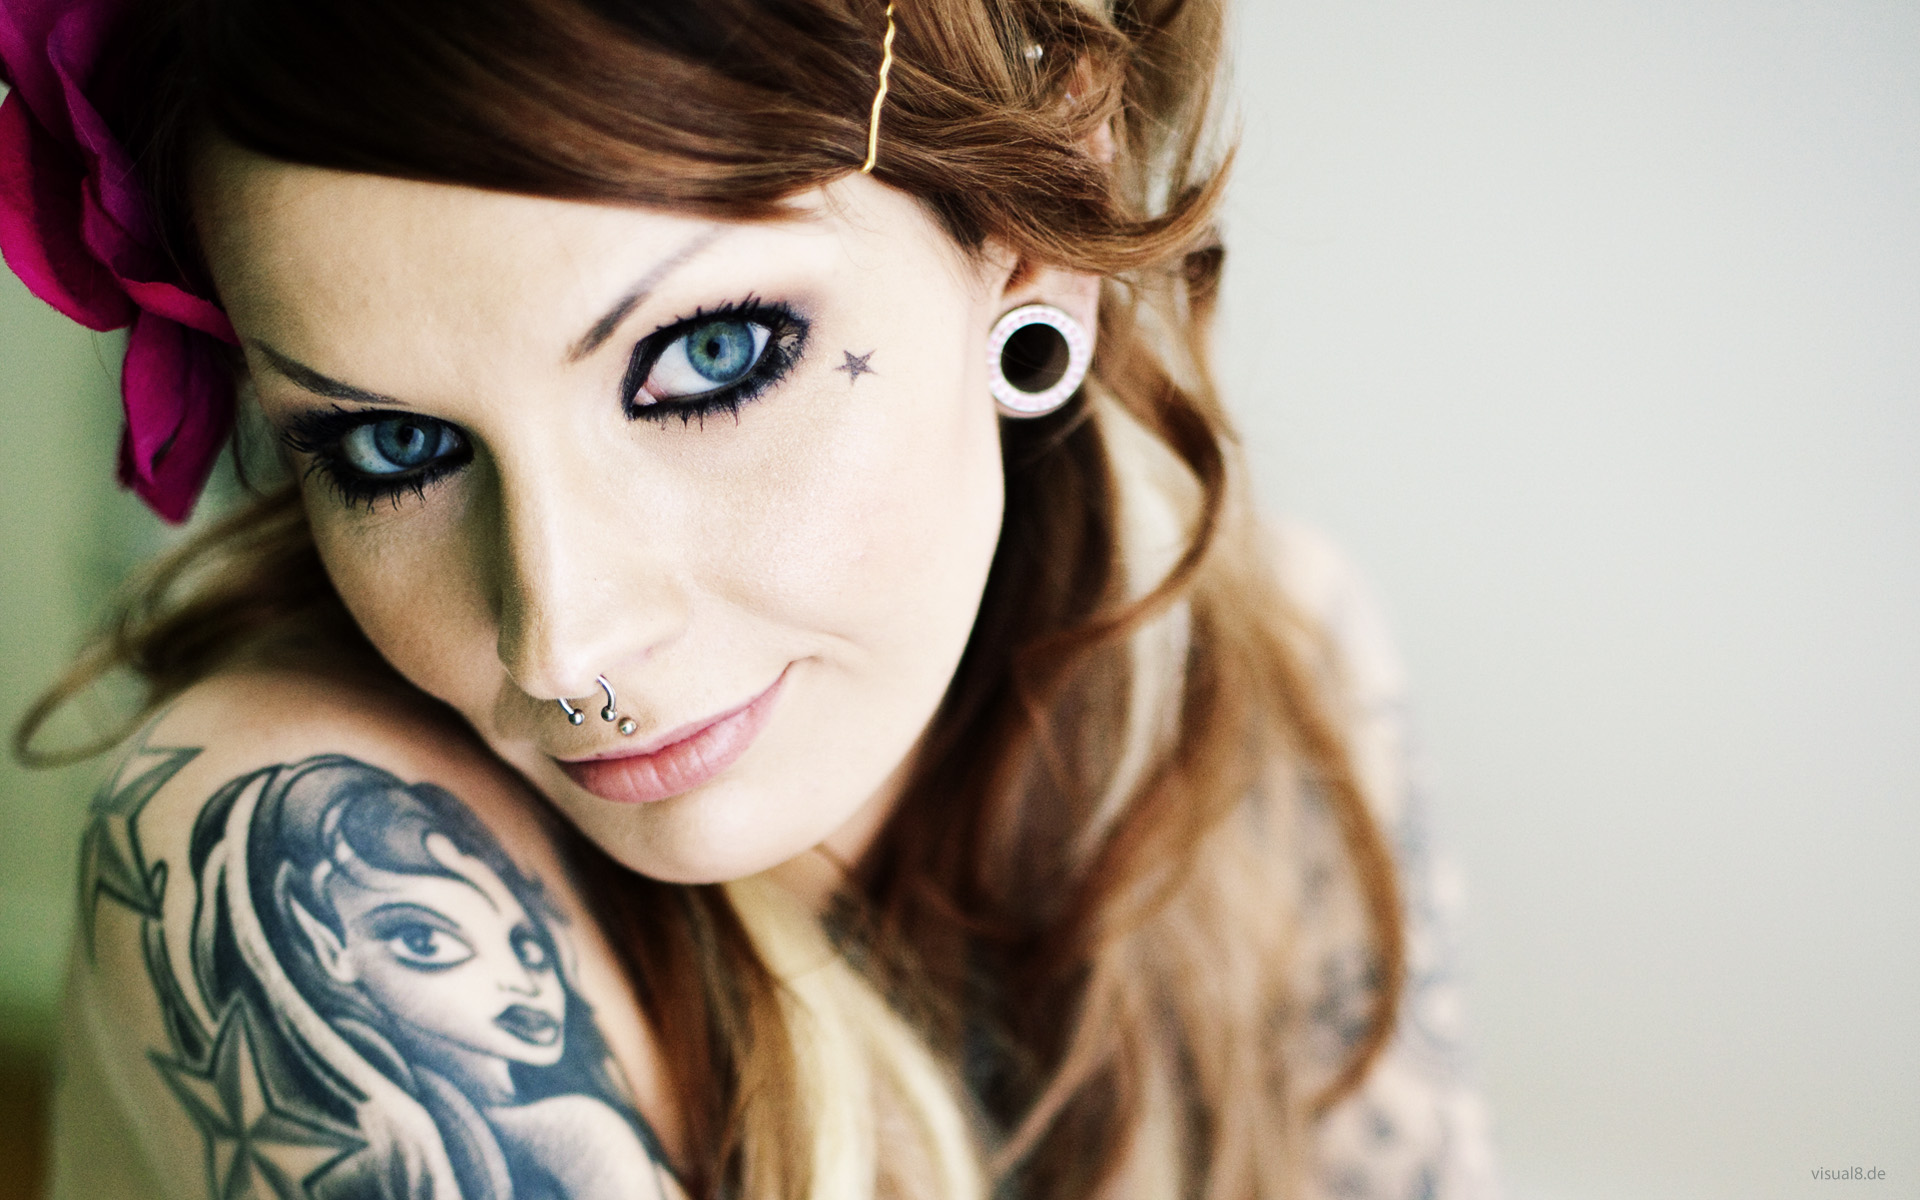 Chica con tatuajes hd 1920x1200 imagenes wallpapers for Woman with tattoos